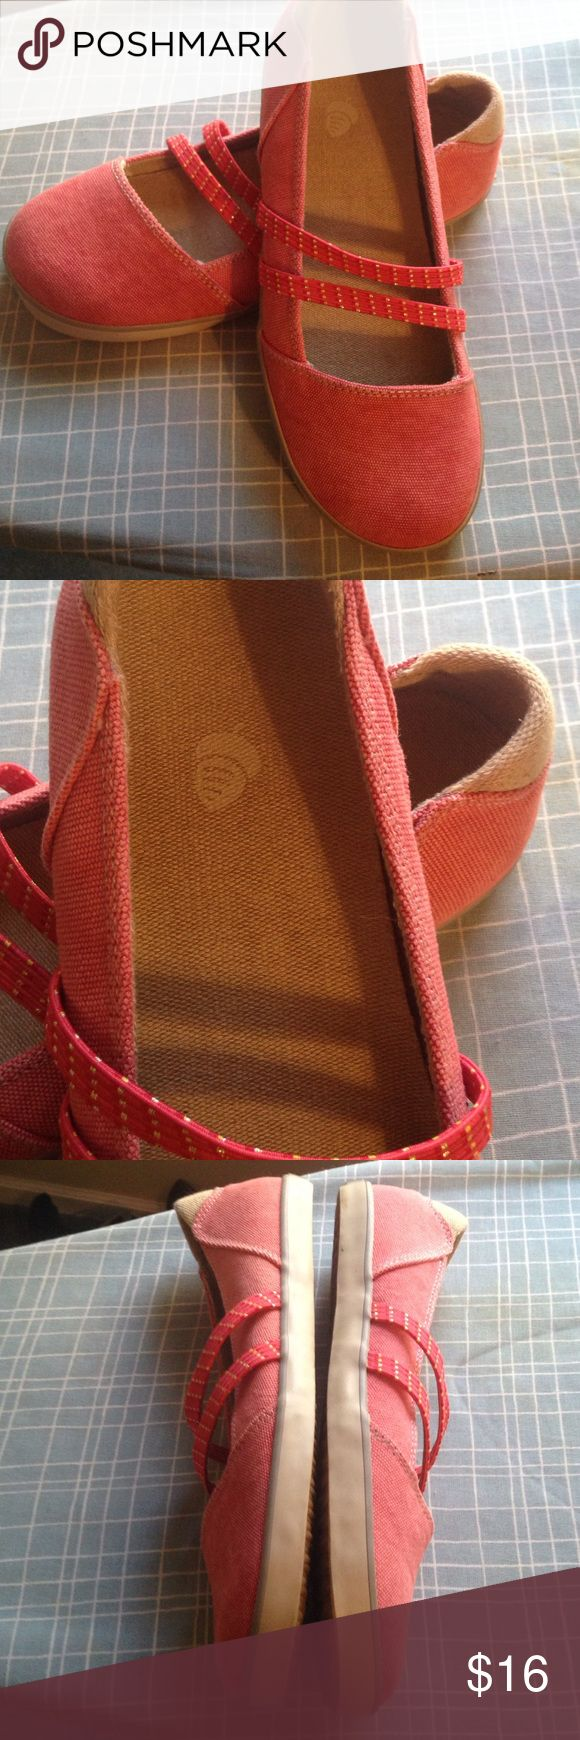 Acorn Shoes Red Hemp look size 8! Reddish Acorn shoes some surface dirt on the interior and Whites of the runner has various Red color tones on fabric. The soles are near perfect with little wear. Thanks acorn Shoes Flats & Loafers